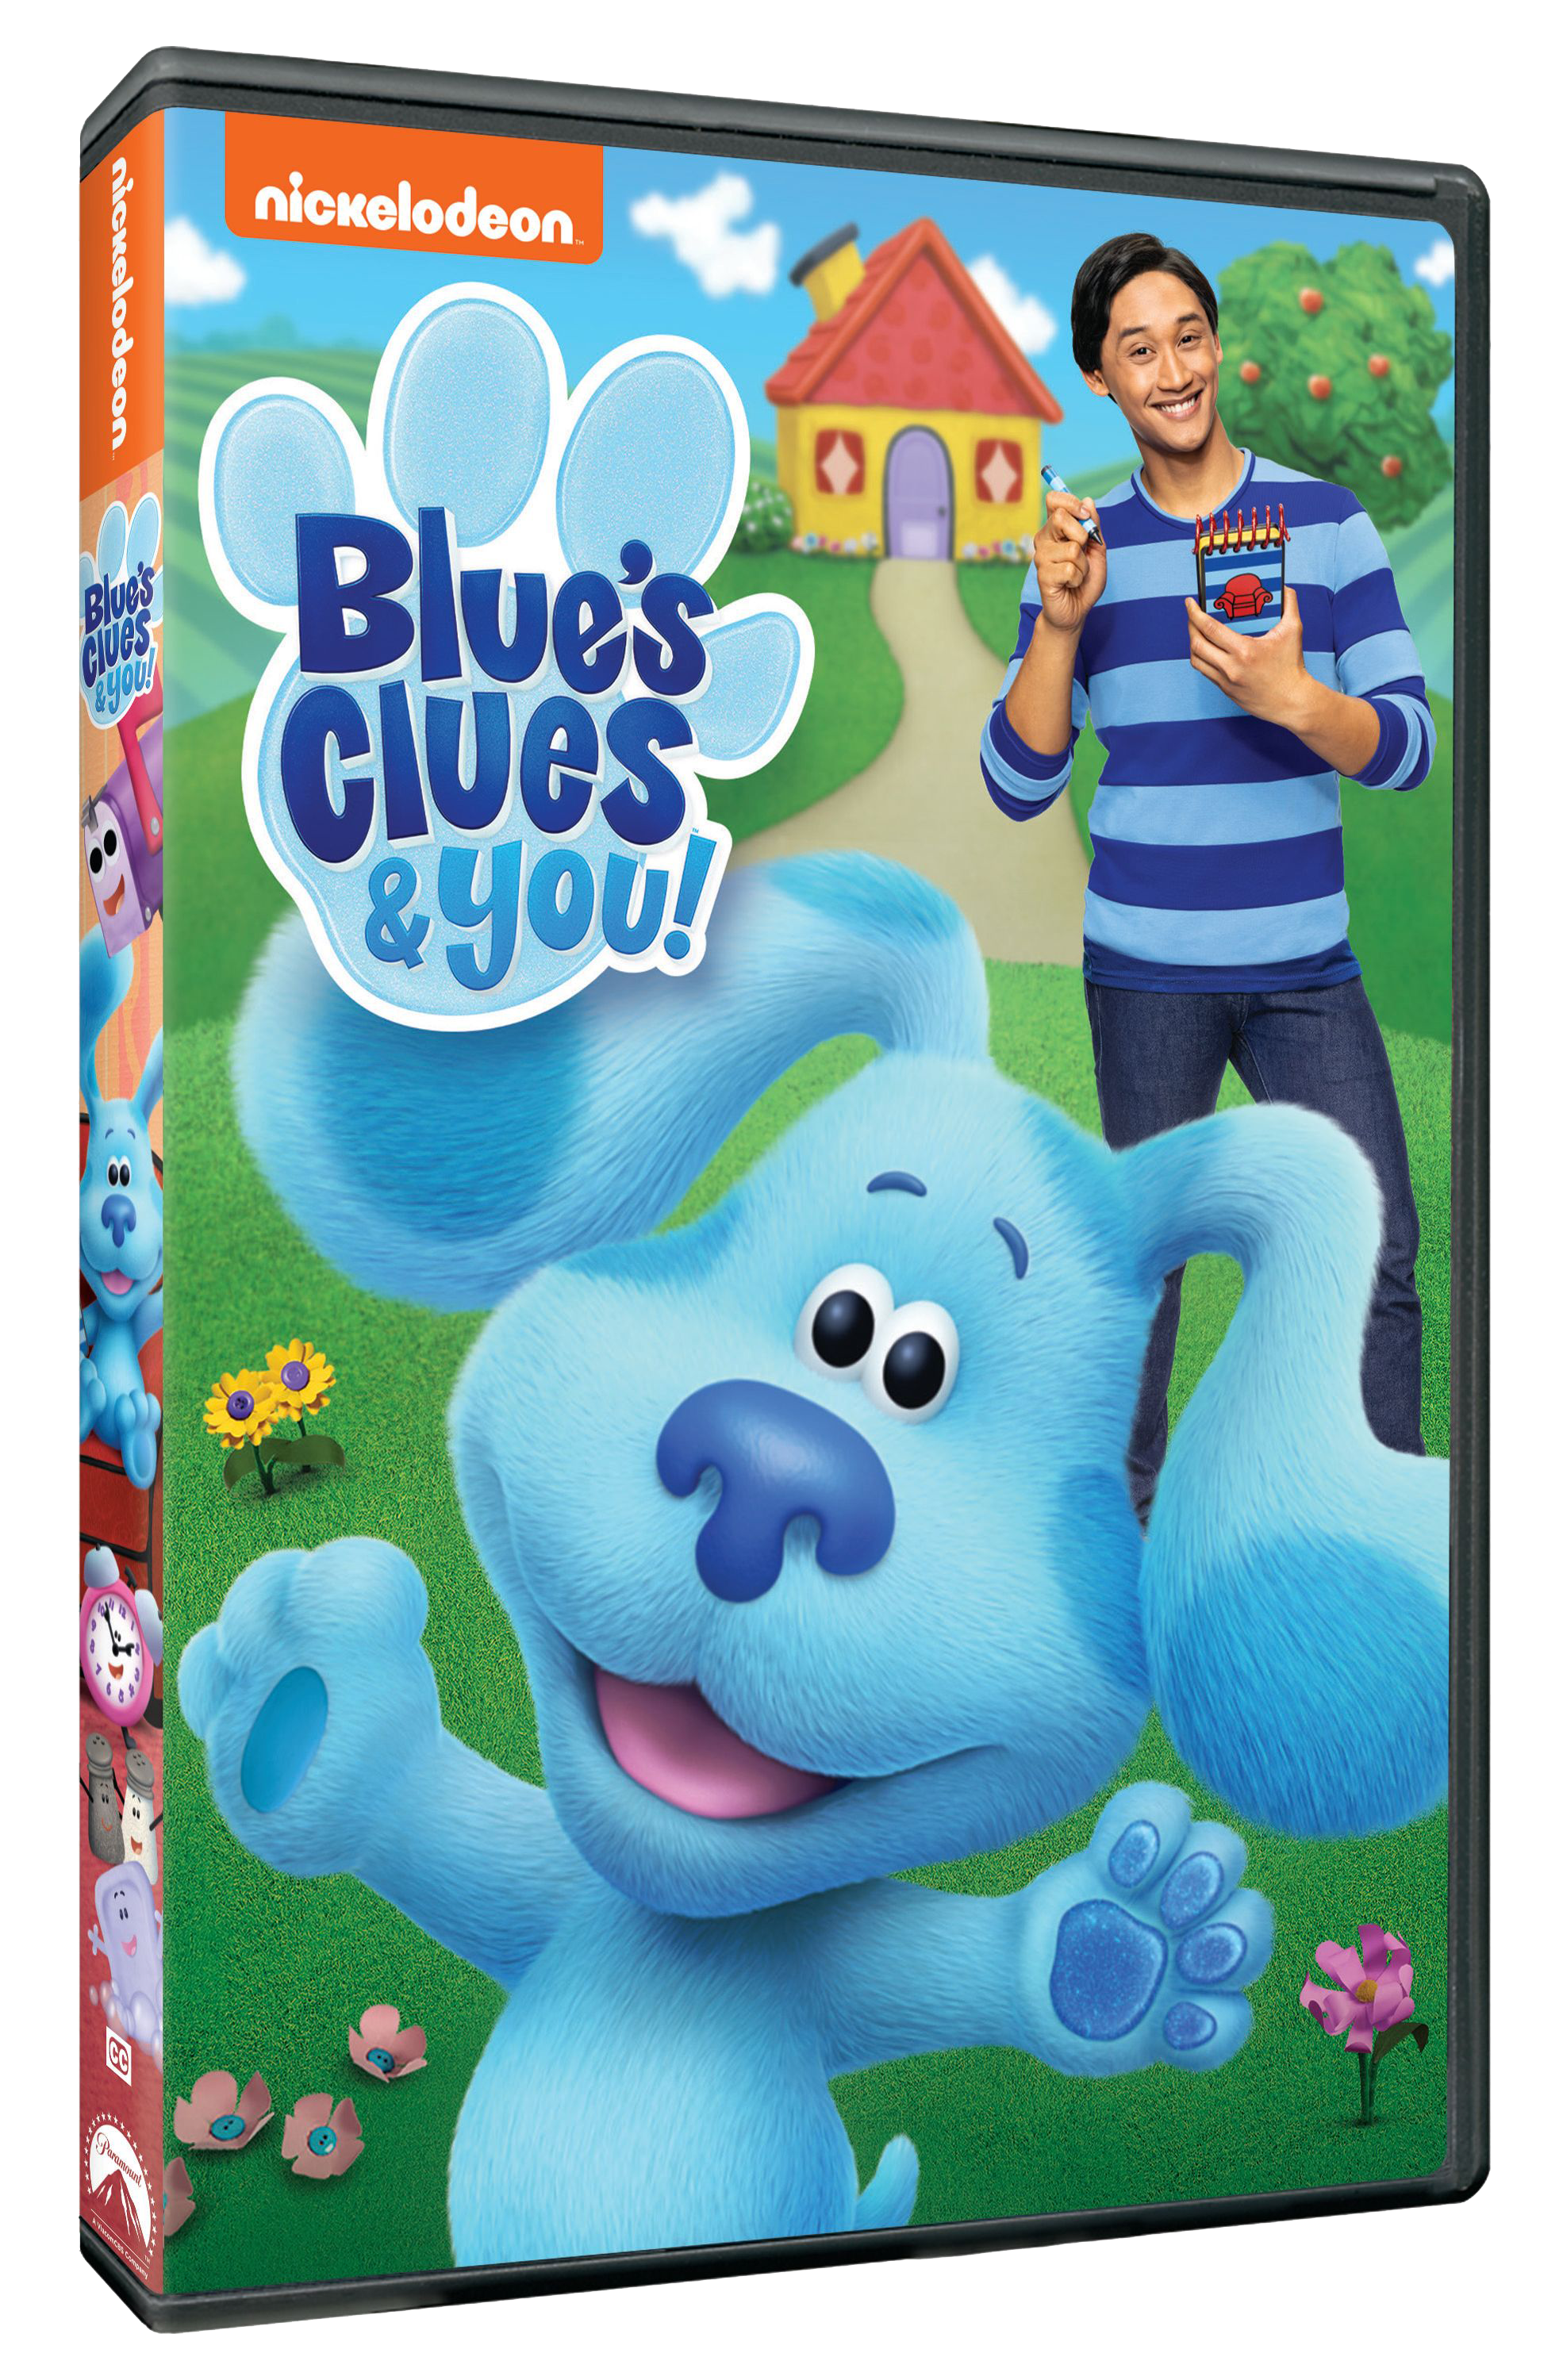 Blue S Clues And You Cookies Paw Prints And Josh S Sweater Popcorner Reviews Its resolution is 640x480 and the resolution can be changed at any time according to your needs after downloading. blue s clues and you cookies paw